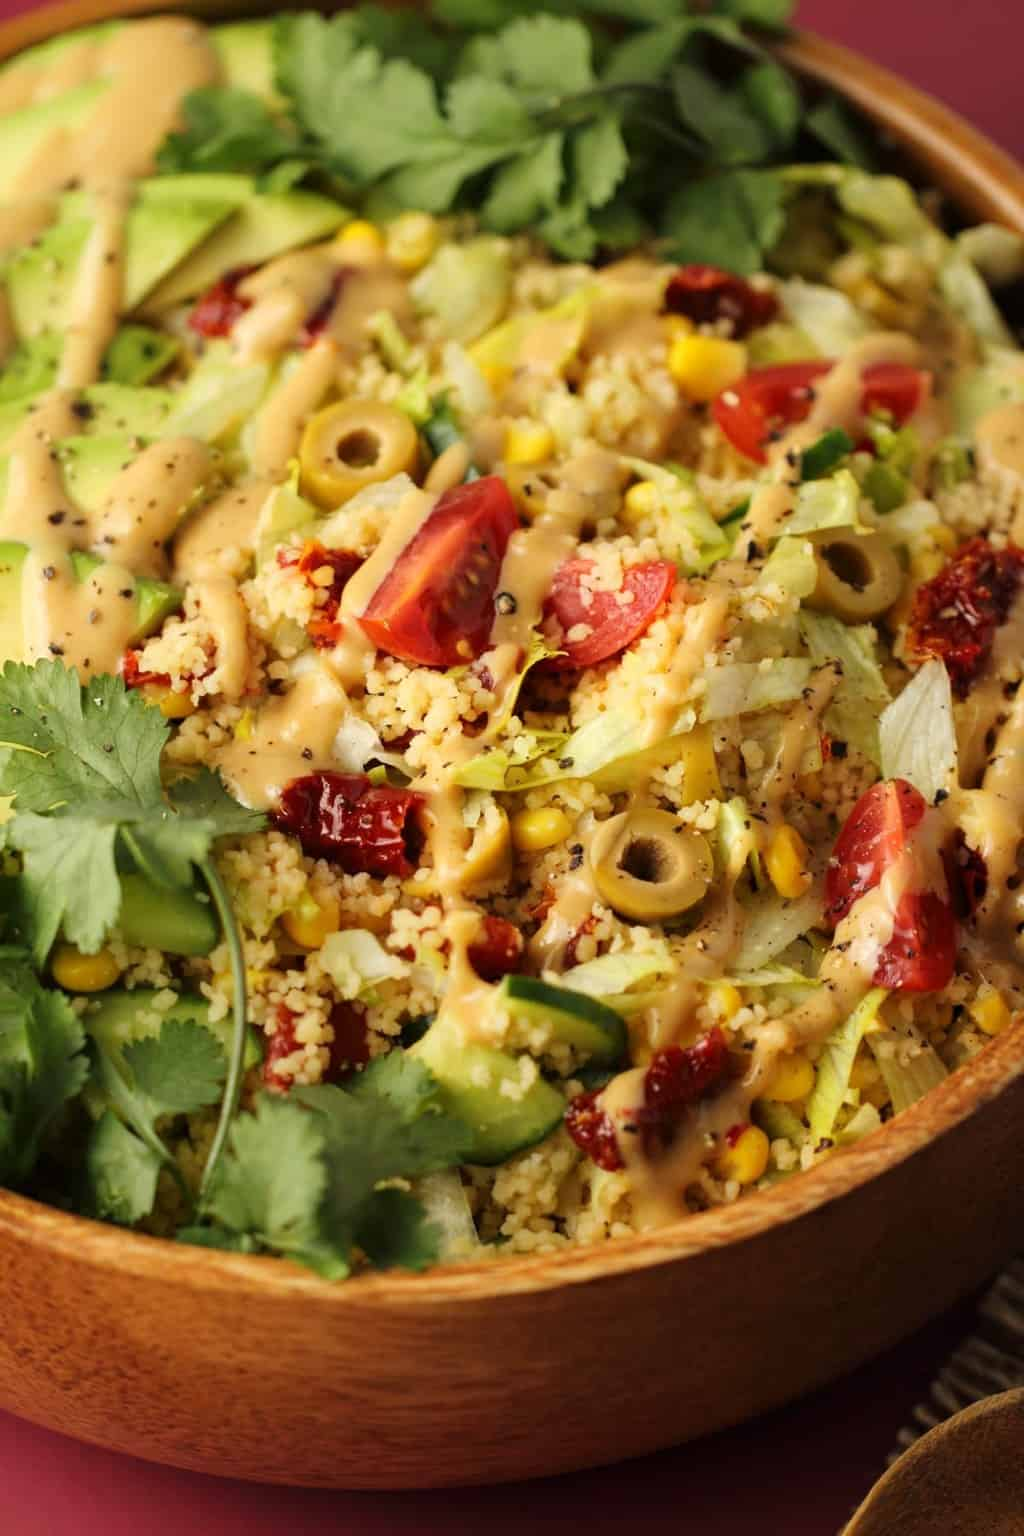 Vegan couscous salad topped with tahini dressing in a wooden salad bowl.